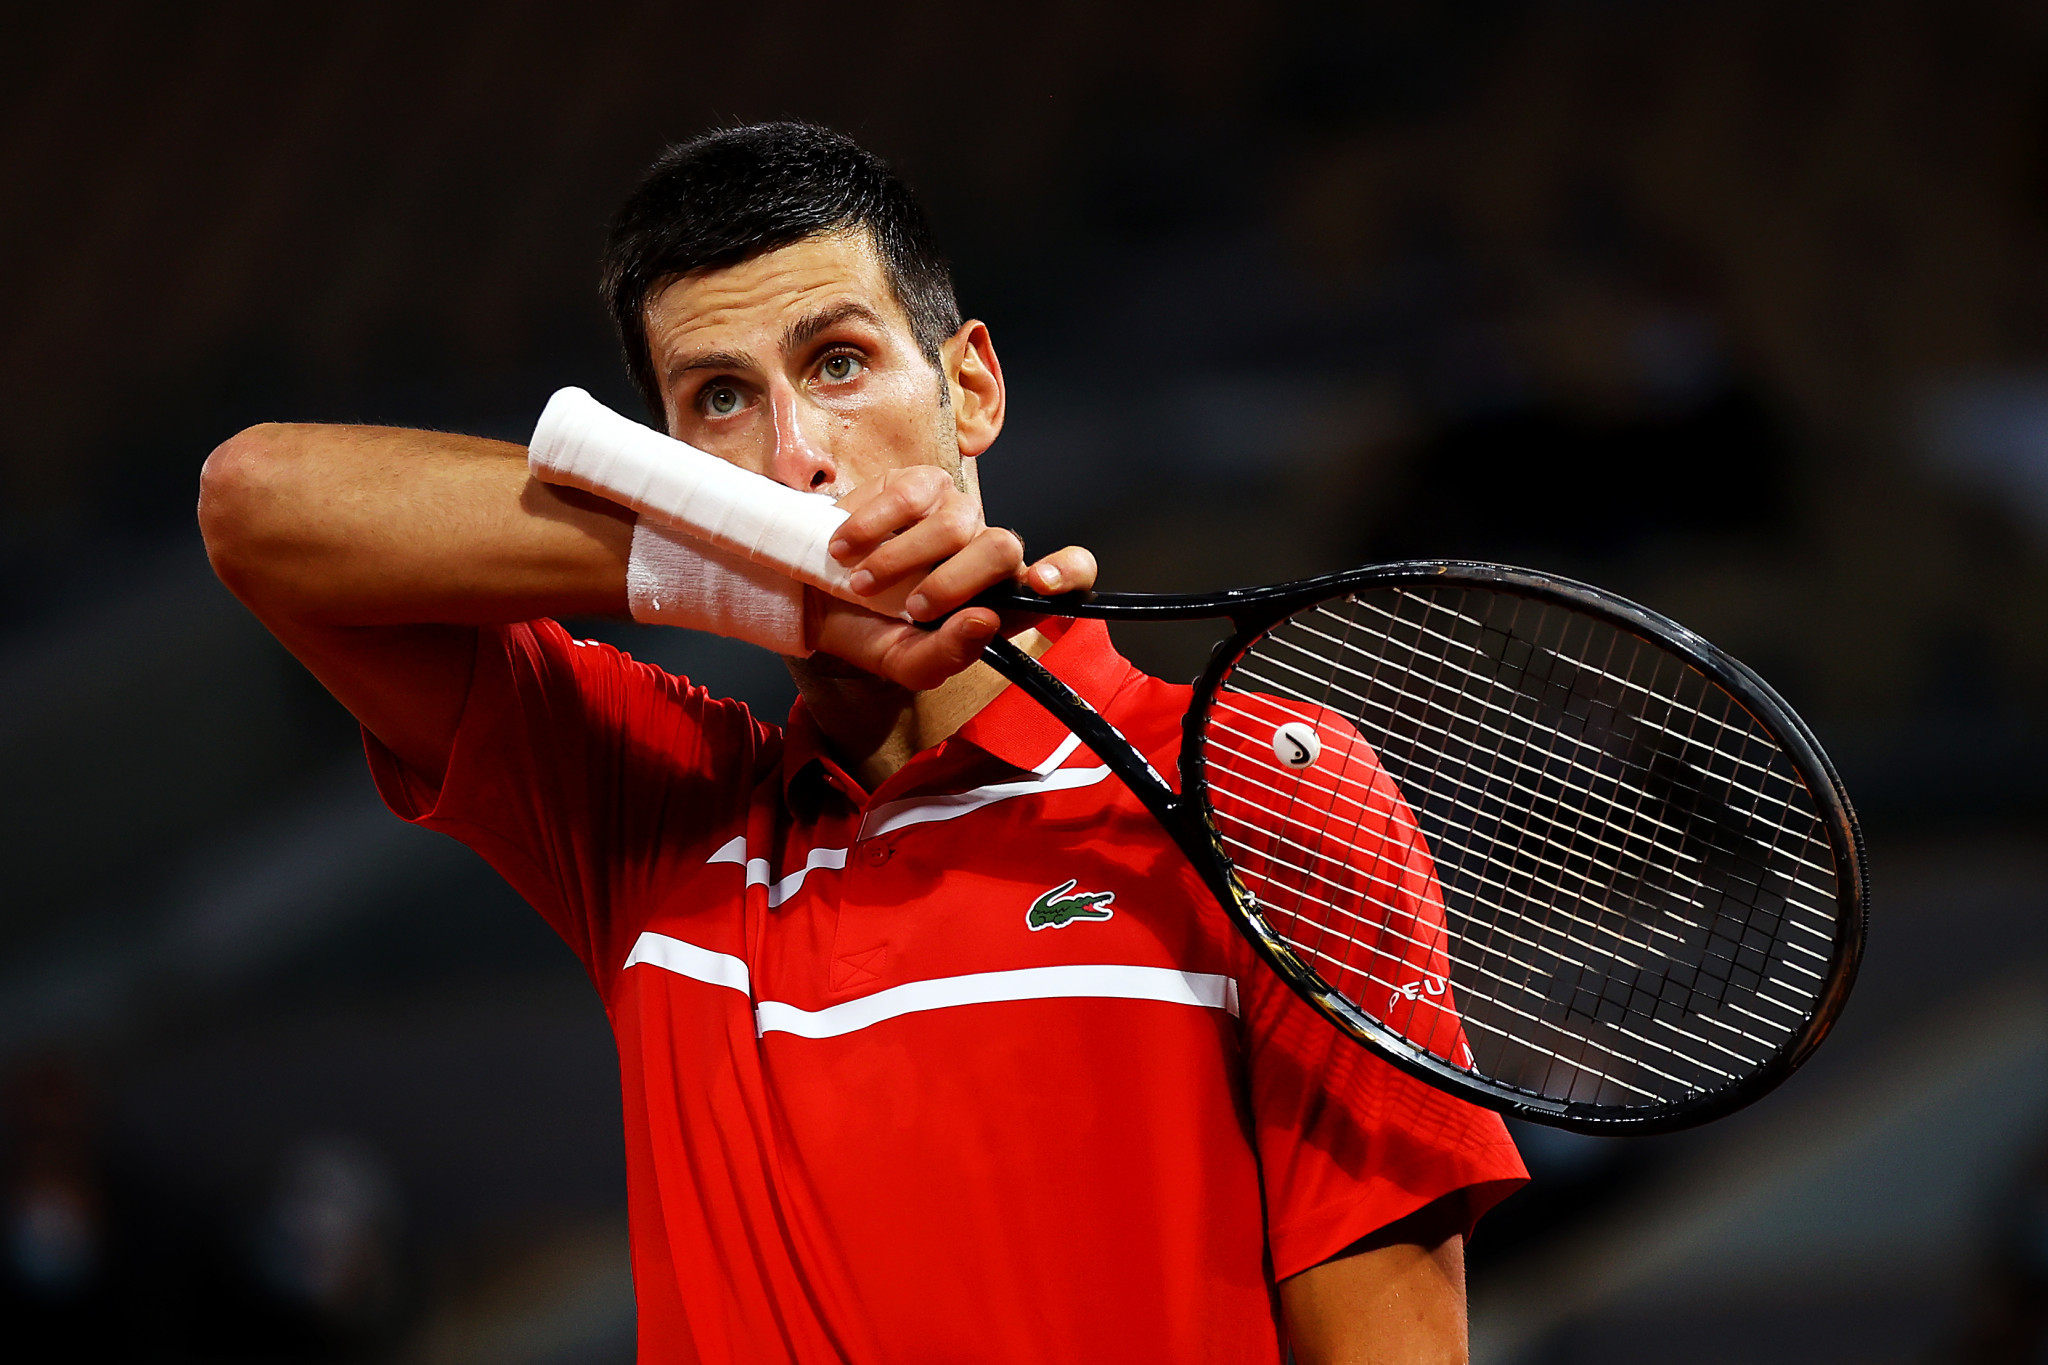 Djokovic accidentally strikes line judge with ball during fourth round French Open win